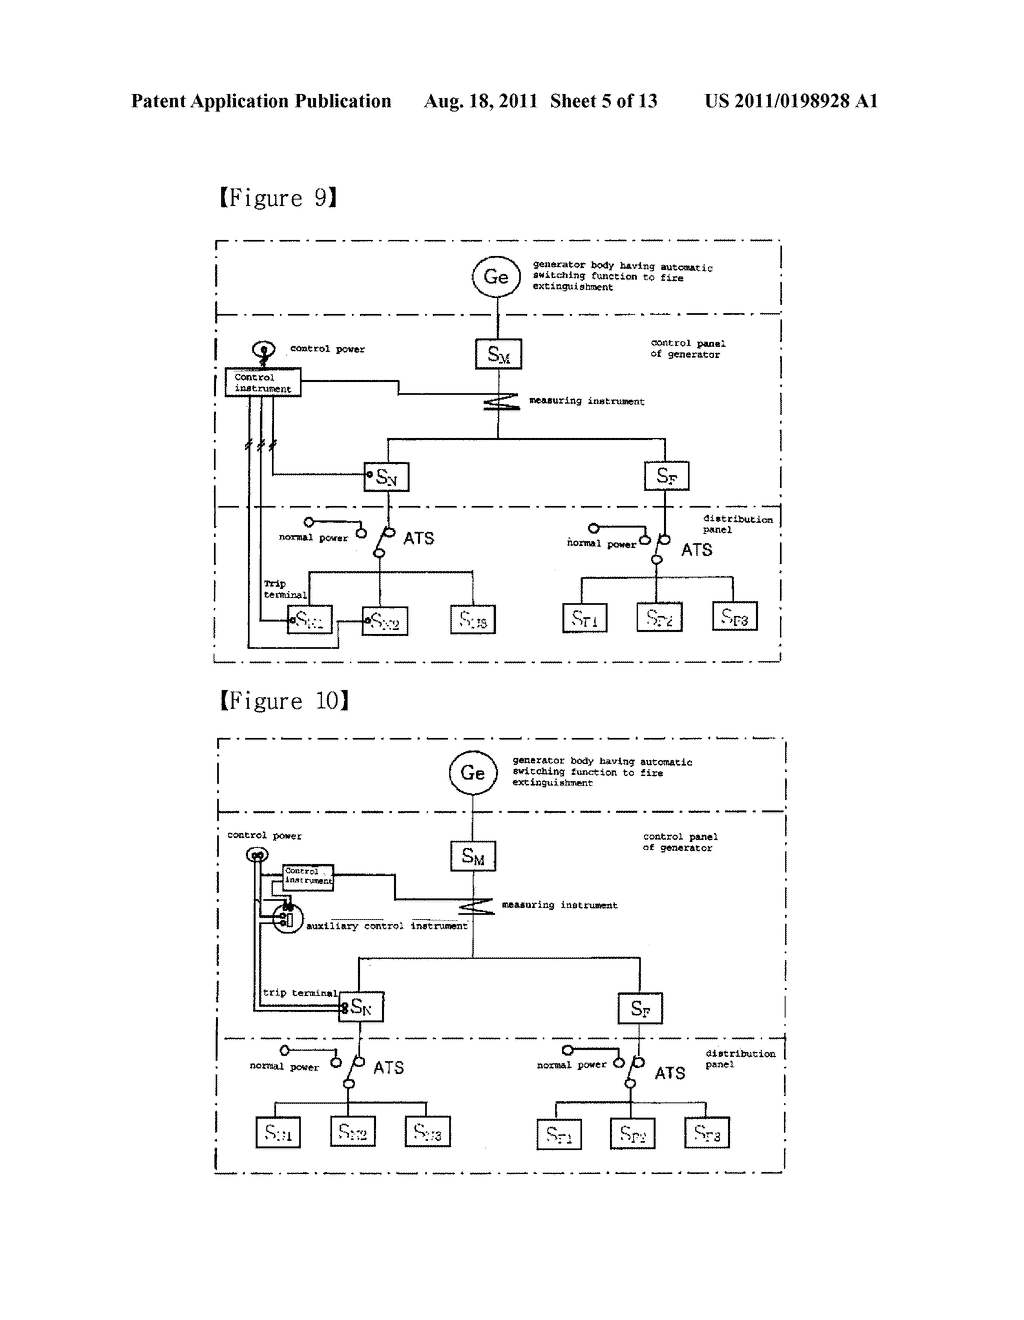 hight resolution of emergency generator power system with reserved fire protection power diagram schematic and image 06